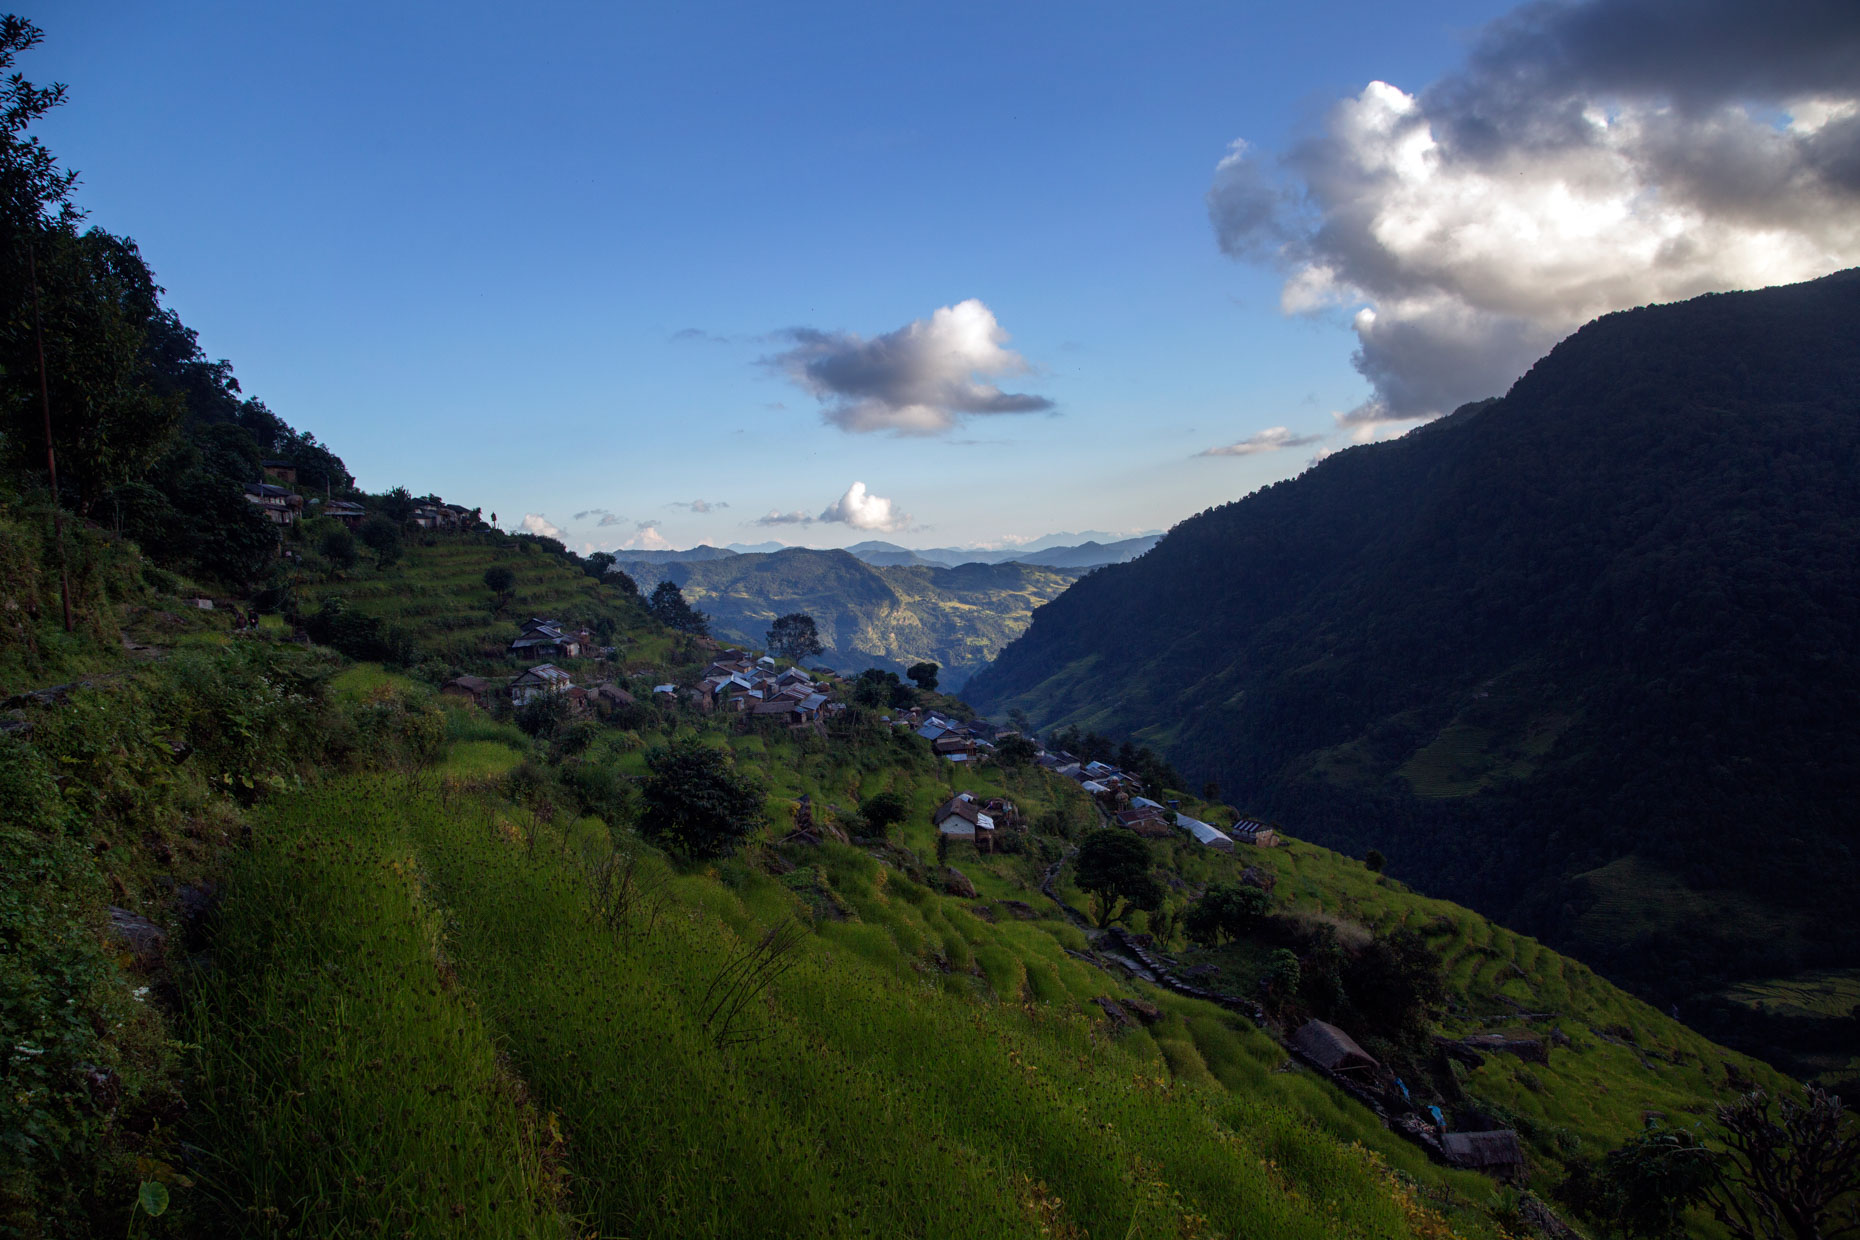 NEPAL_HONEY_LUFTHANSA_2014_10_16_30898